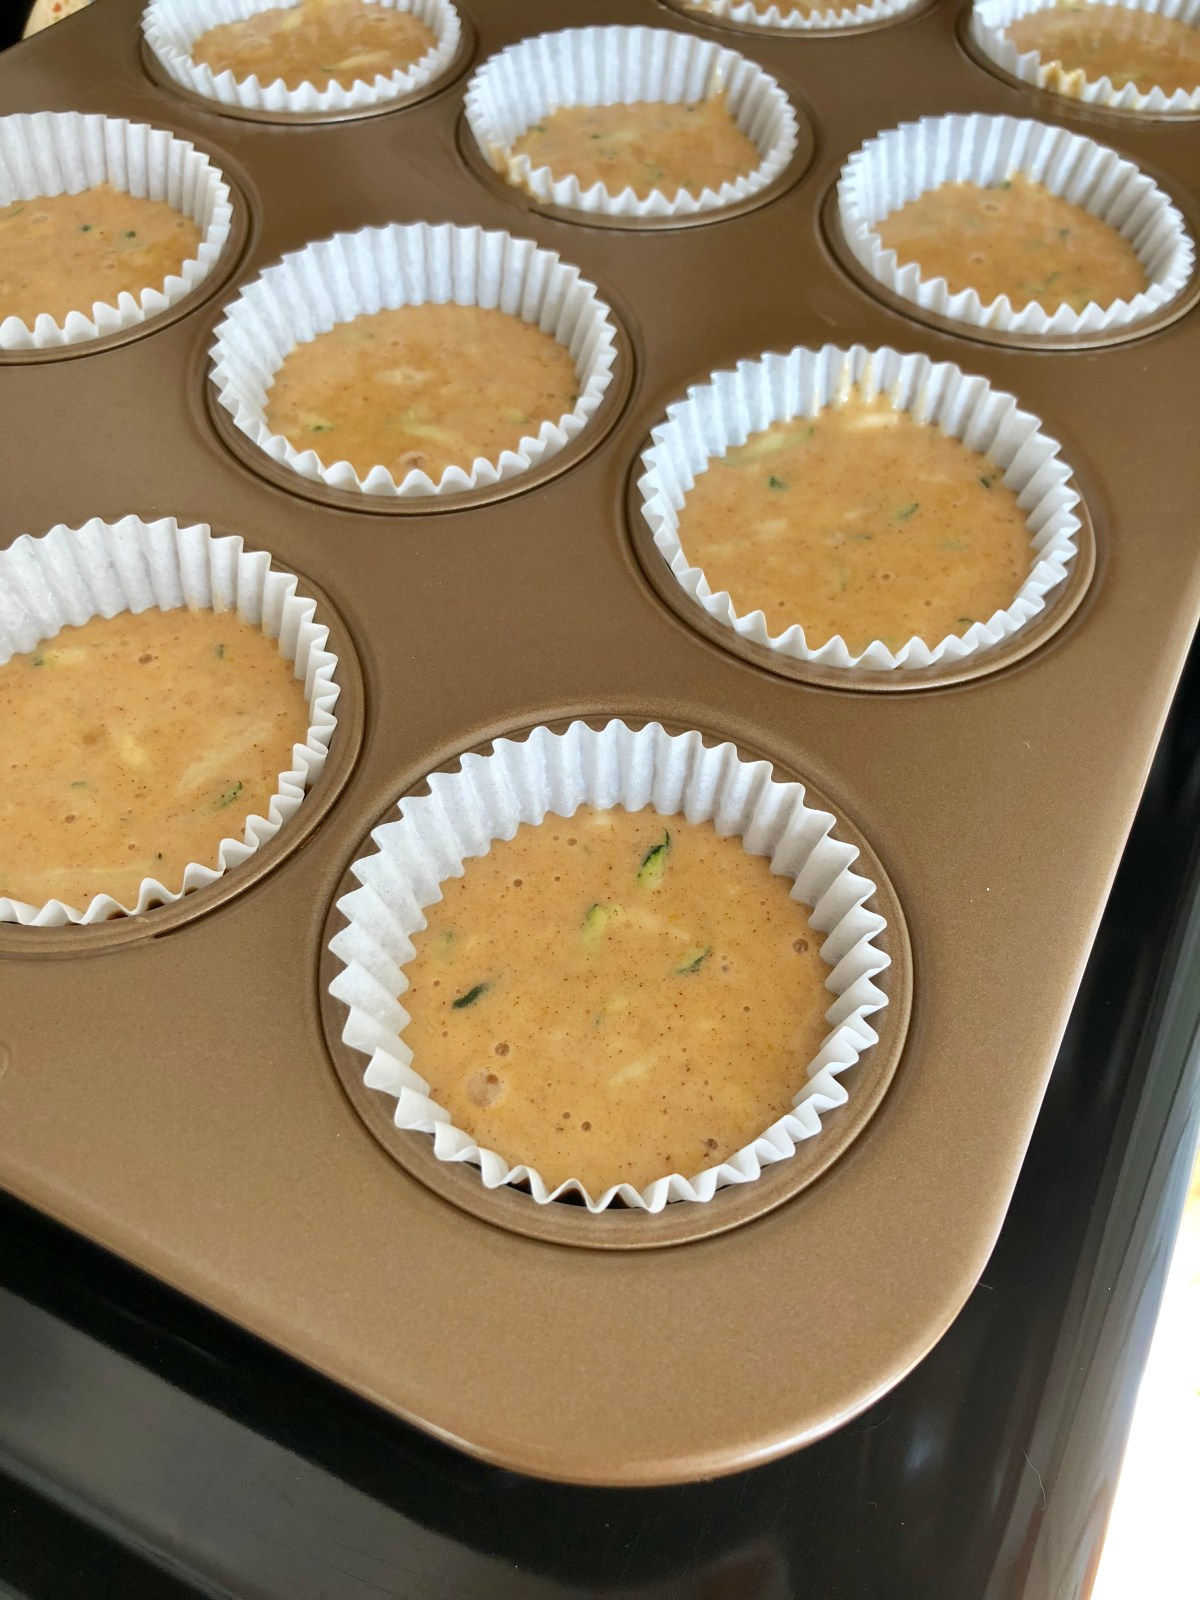 Frosted Zucchini Cupcakes by Happylifeblogspot.com #zucchinirecipes #zucchinicupcakes #spicecupcakes #fallrecipes #zucchini